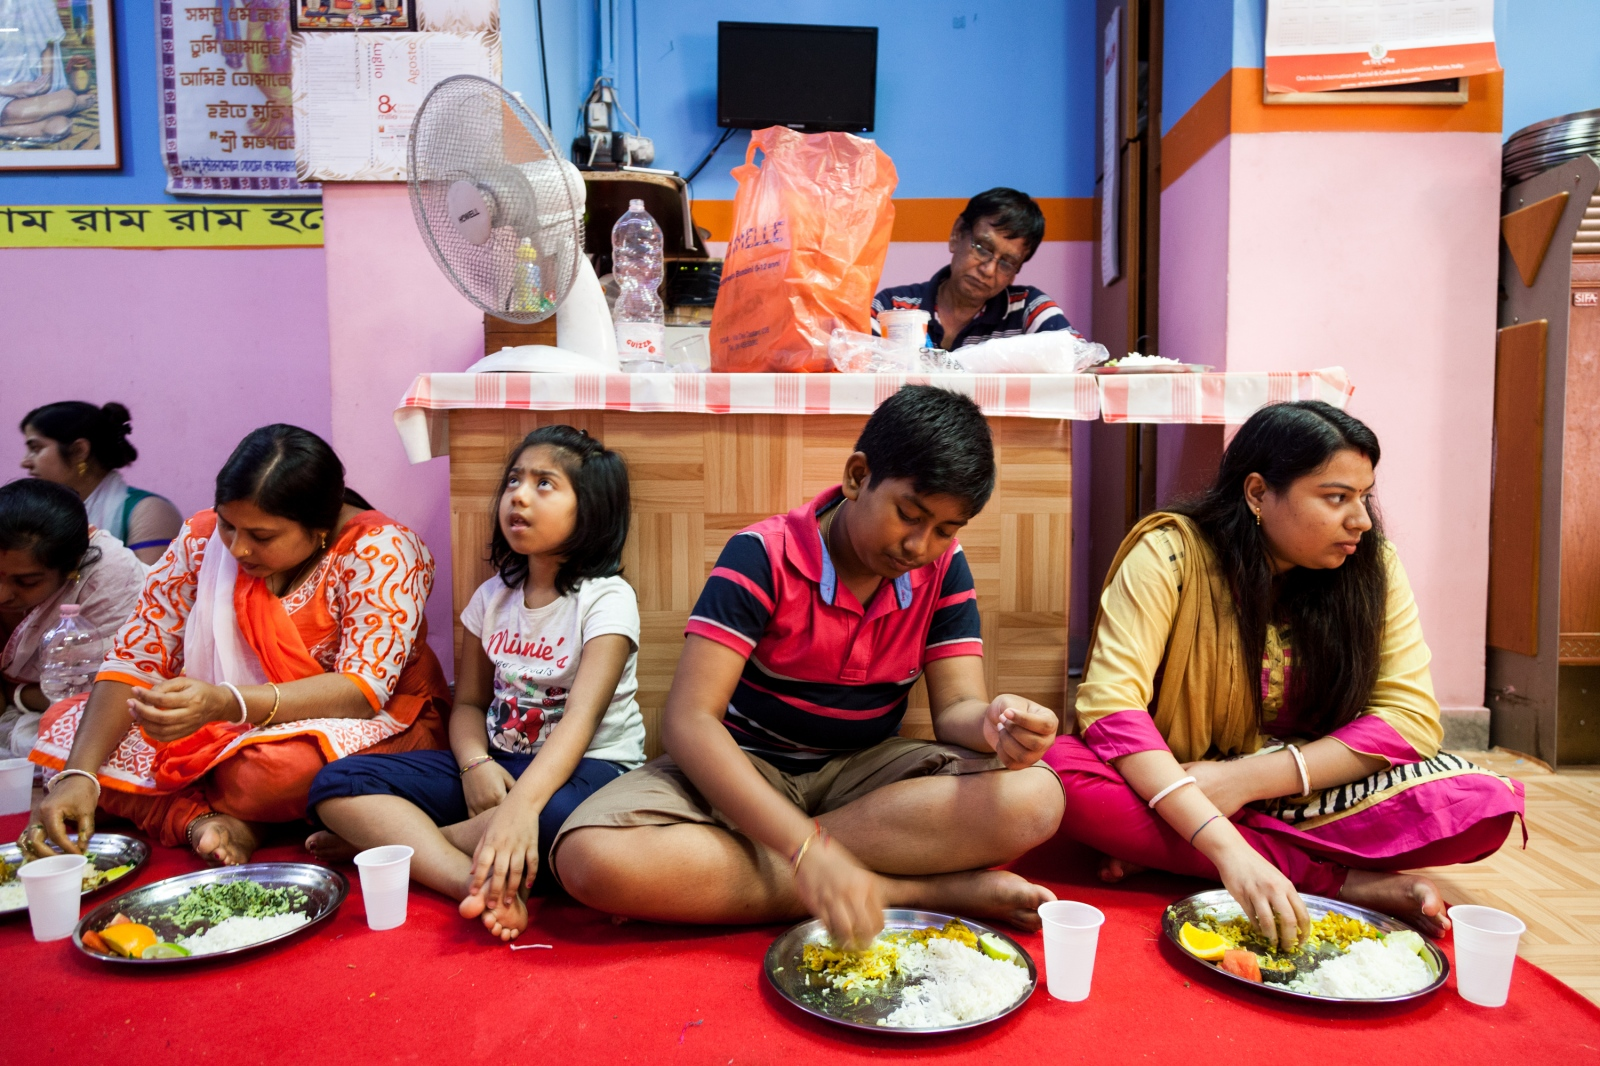 """On Krishna Janmashtami, the annual celebration for the birthday of the deity Krishna, some people eat their lunch in the """"Om Hindu Mandir"""" temple of Torpignattara, a working class neighborhood in the southeastern suburbs of Rome."""